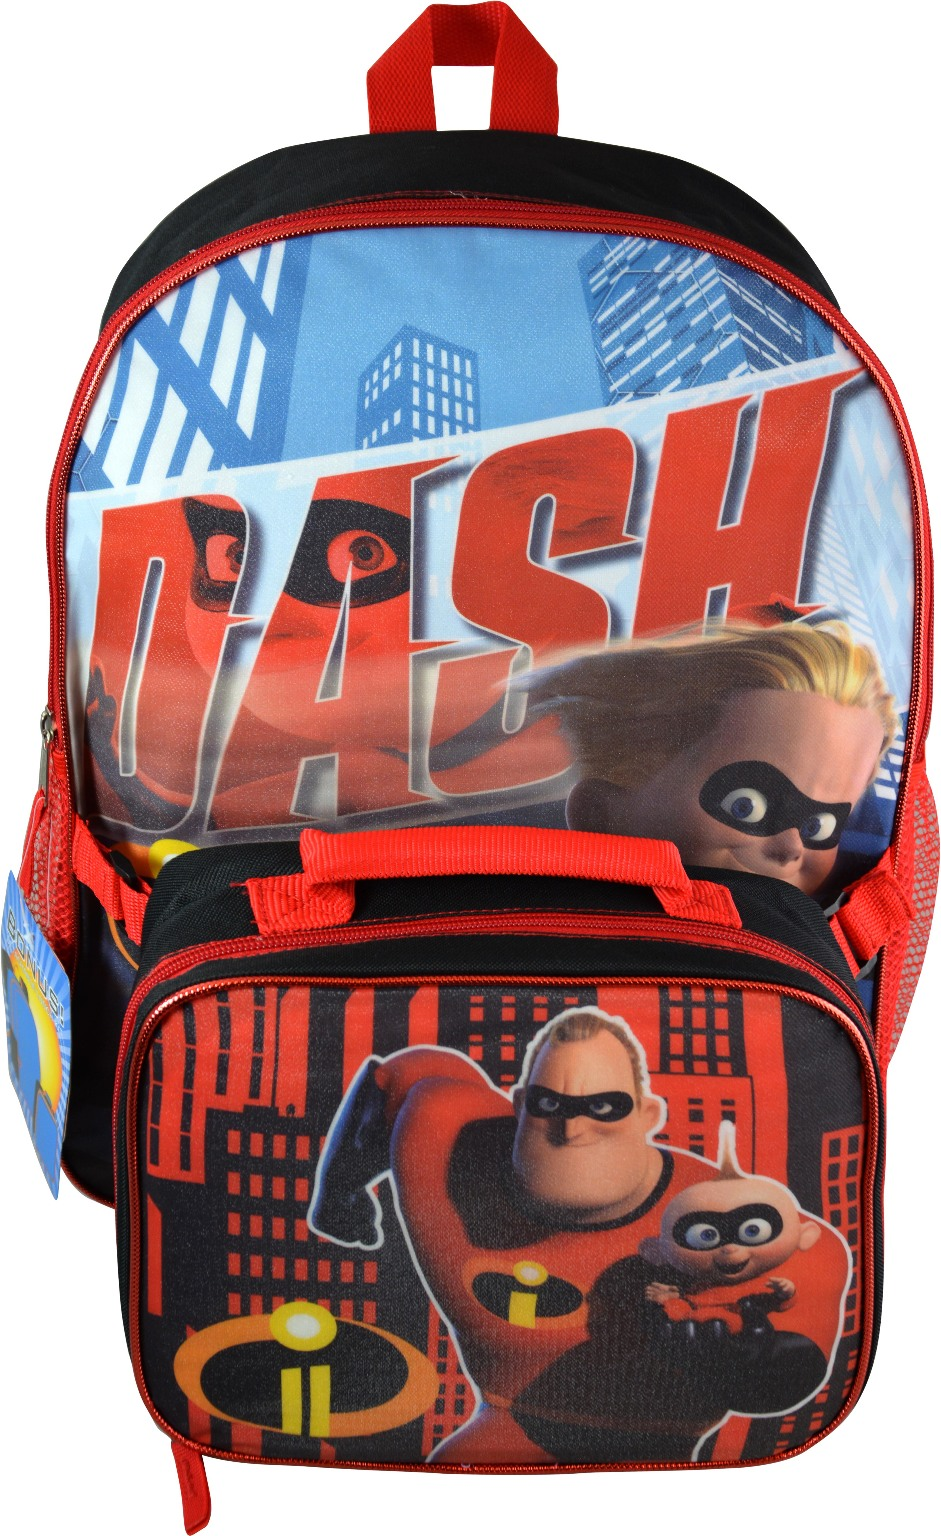 Wholesale Incredibles 16 Quot Backpack With Lunch Bag Sku